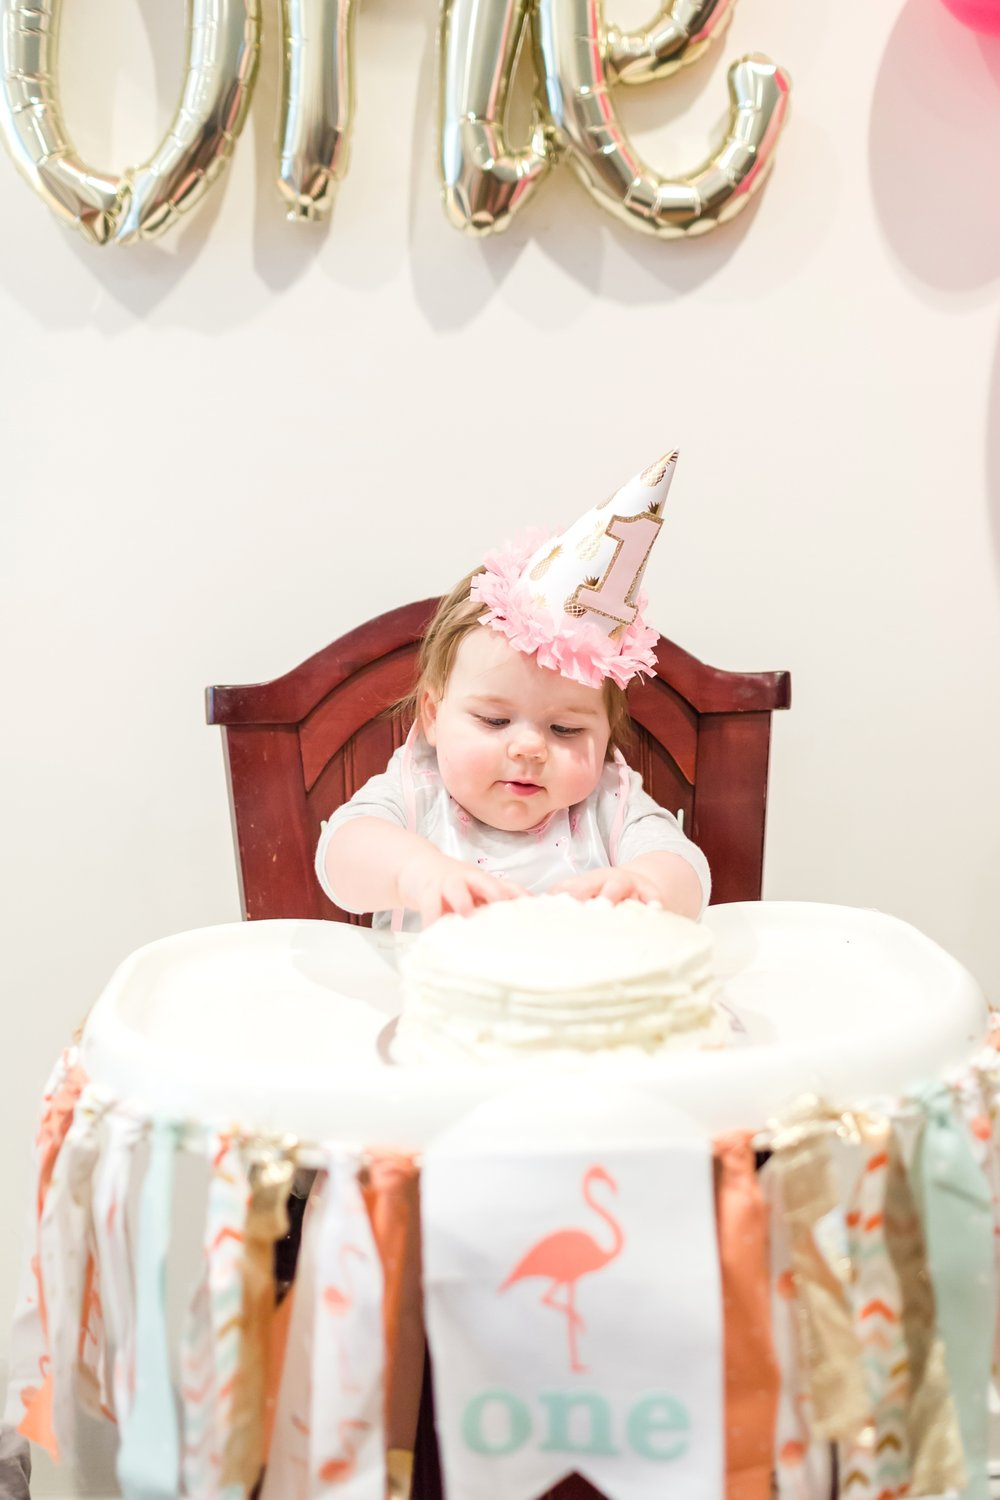 Payton FIrst Birthday-287_maryland-family-1st-birthday-cake-smash-flamingo-birthday-party-photographer-anna-grace-photography-photo.jpg